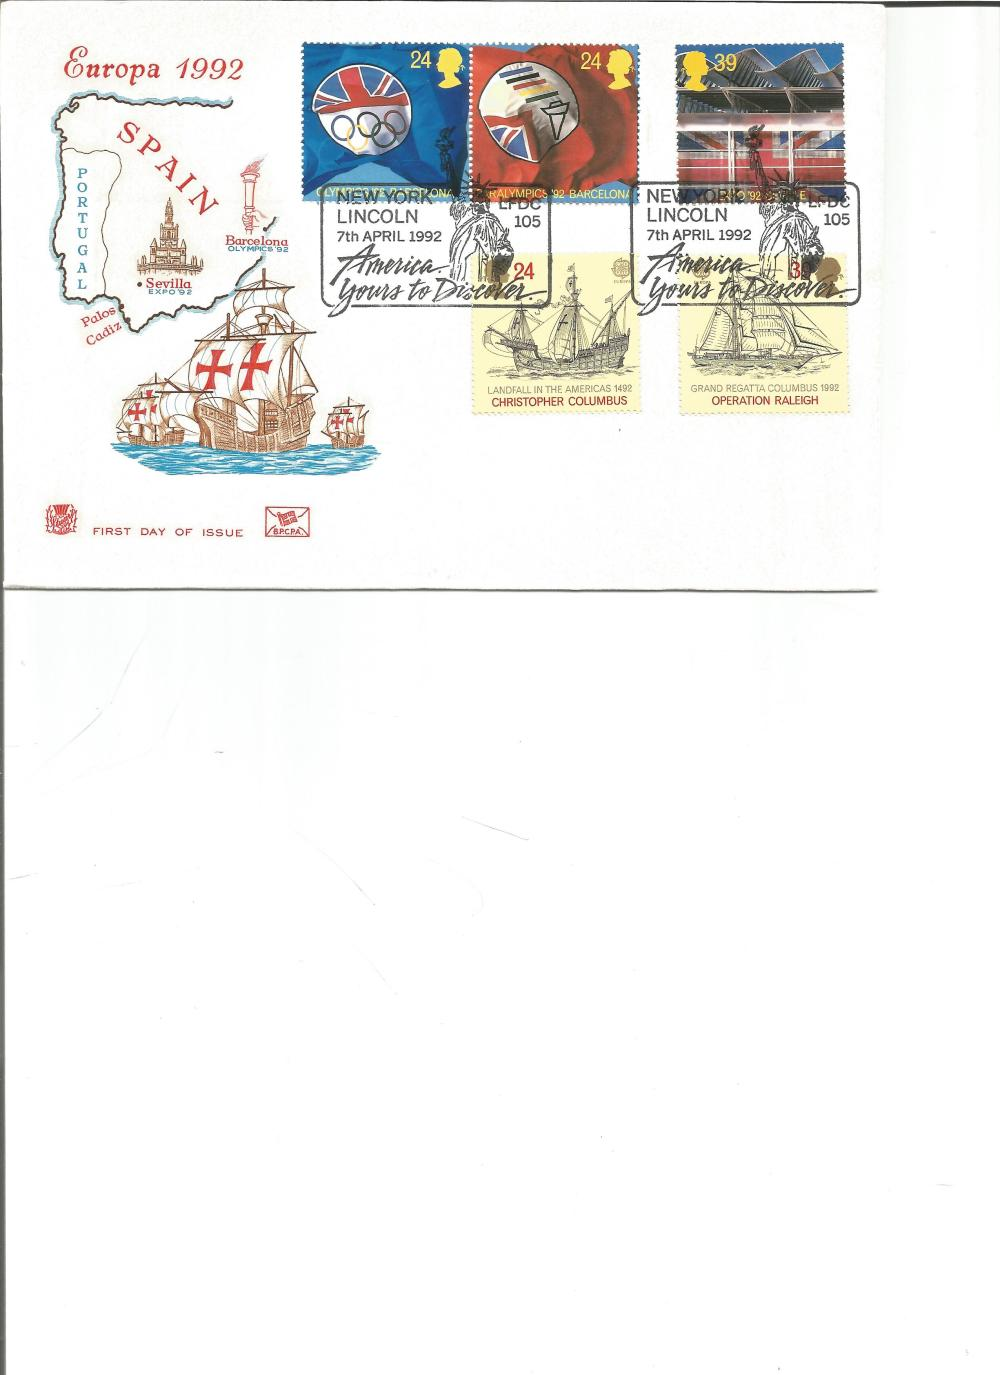 FDC Europa 1992 Spain c/w set of five commemorative stamps double PM New York Lincoln 7th April 1992